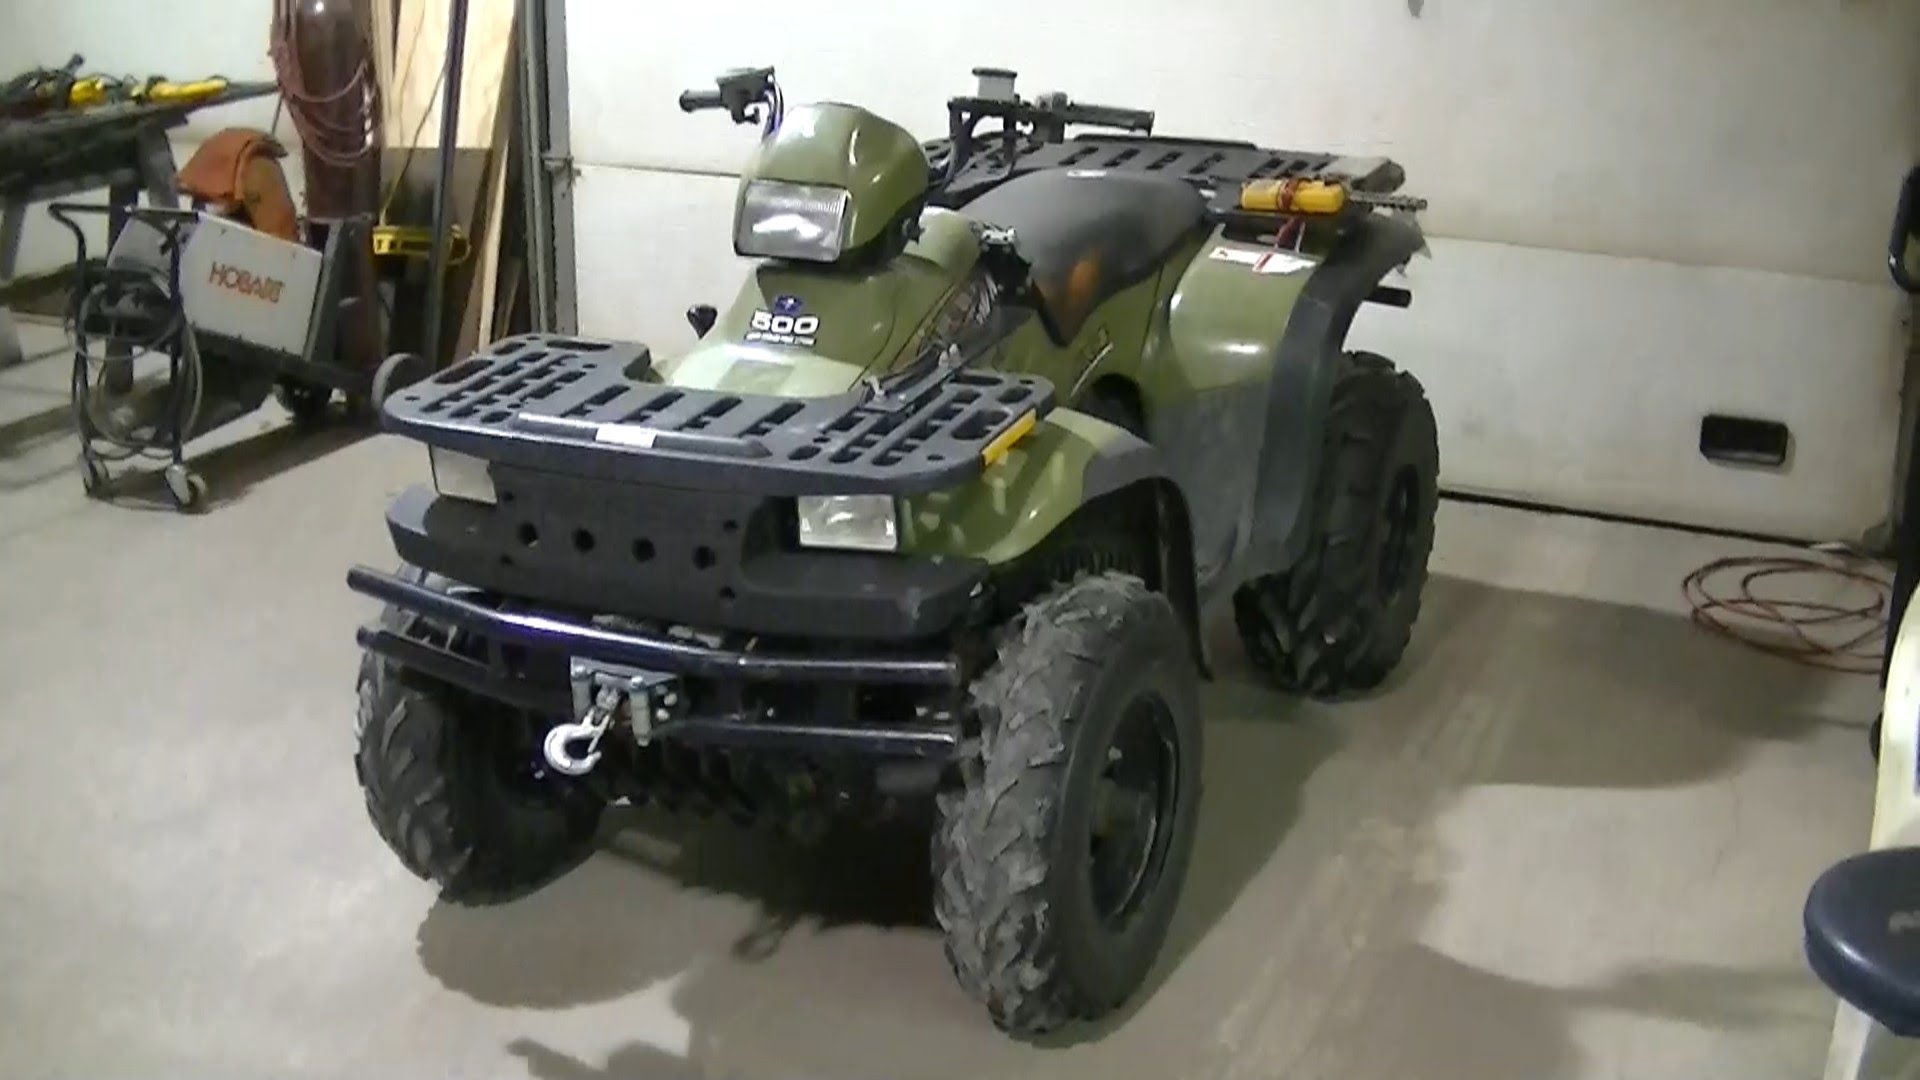 Polaris Sportsman 600 2006 images #121105